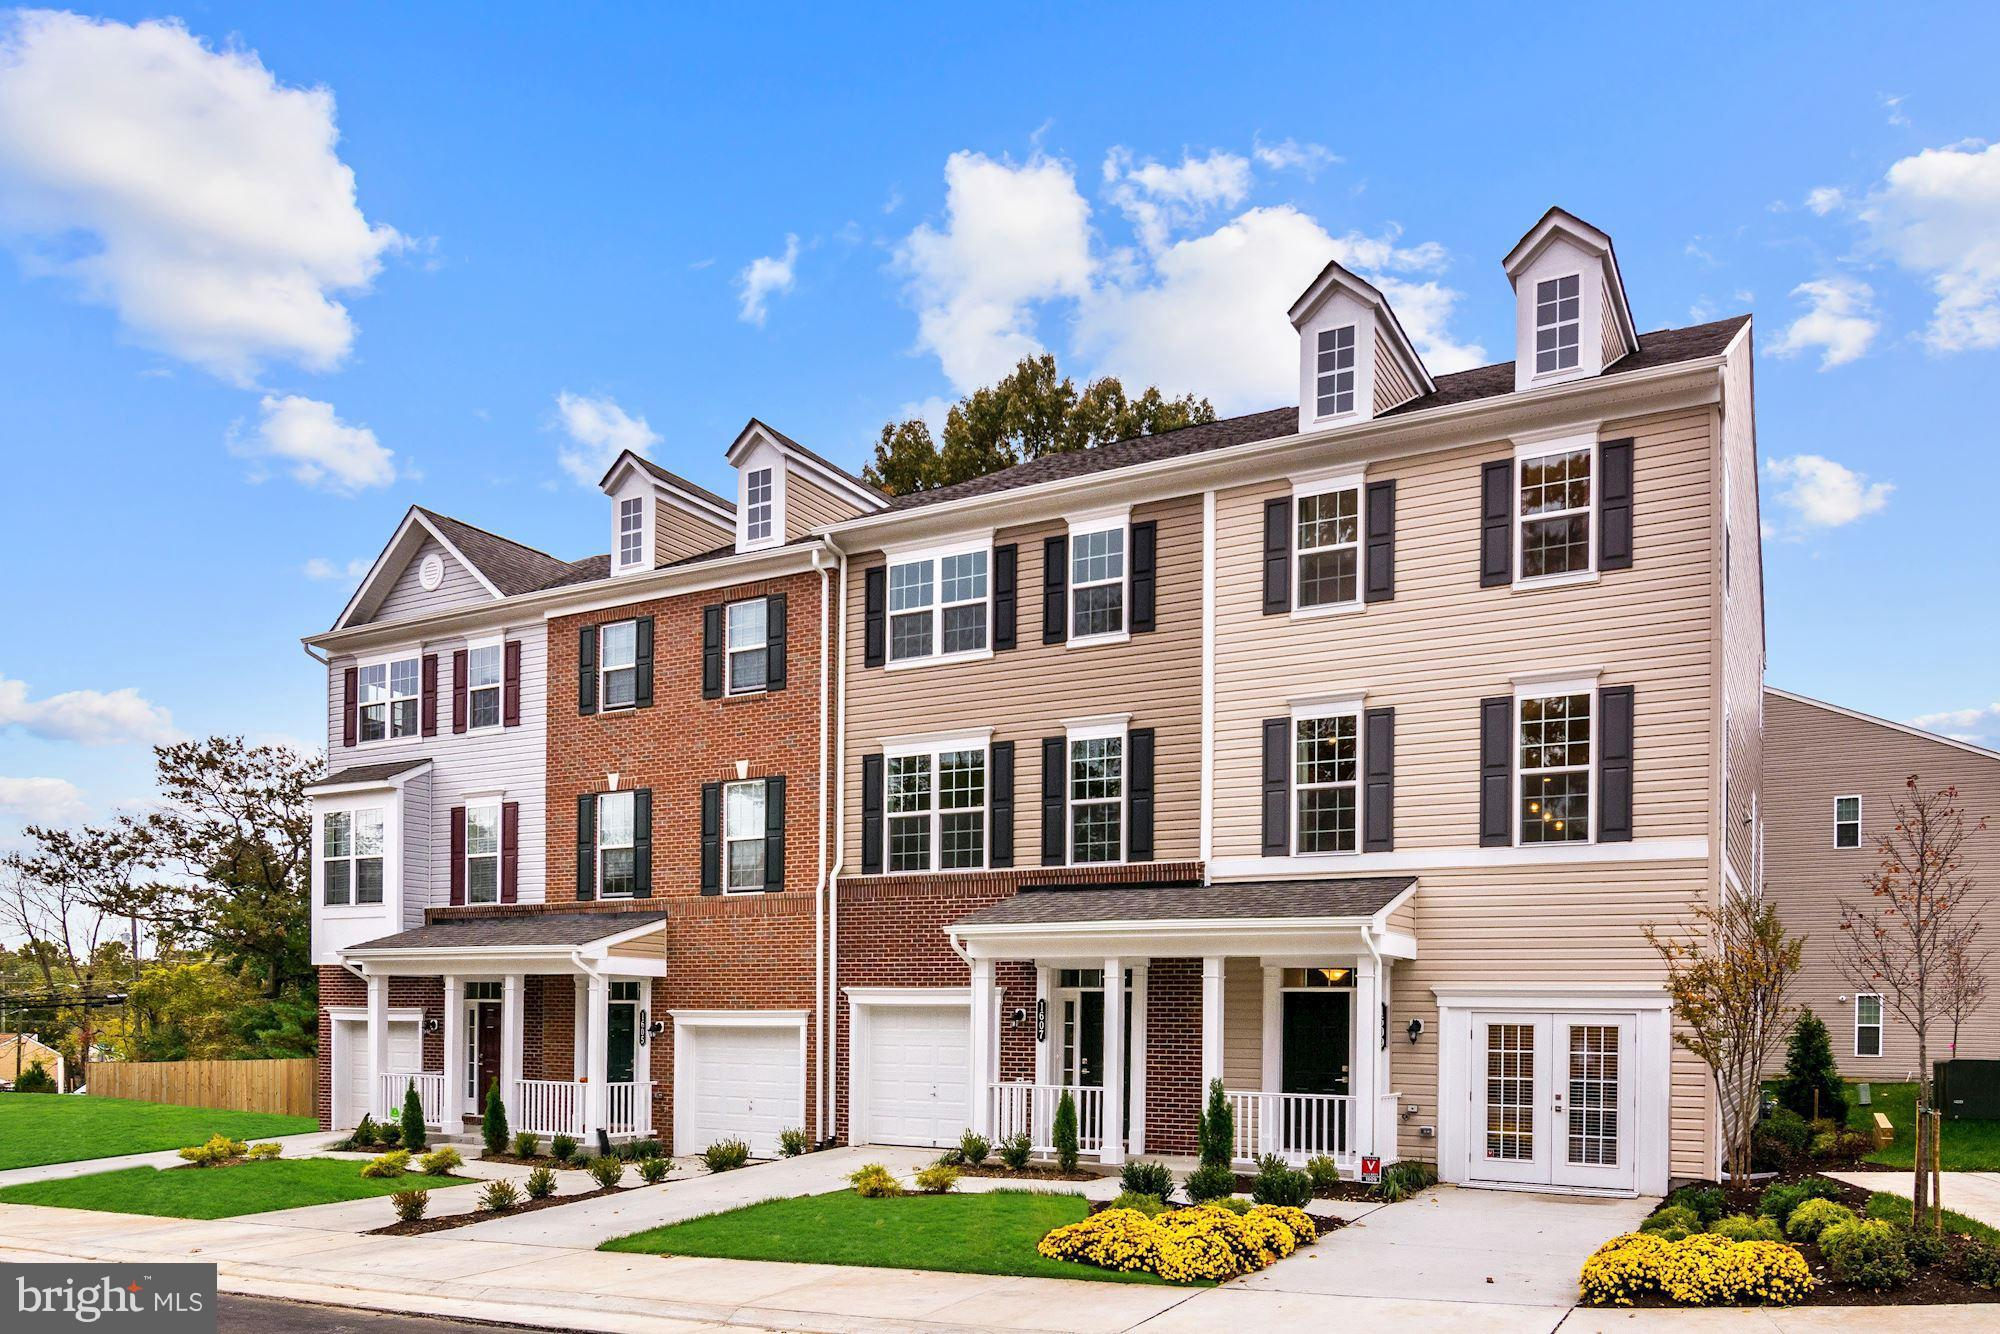 """BRAND NEW BEAZER TH STYLE CONDO W/ 1 CAR GARAGE! BACKS TO TREES. FEB/MAR DELIVERY. GOURMET KIT W/ LUNA PEARL GRANITE COUNTERTOPS AND NUTMEG KITCHEN CABINETS. SS APPLIANCES. 3"""" ENGINEERED OAK WOOL FLOORS ON ENTIRE MAIN FLOOR. MBA W/ DELUXE TUB. 5 MINS AWAY FROM VRE! $10K IN CLOSING COSTS! PRICES/TERMS/AVAILABILITY SUBJ TO CHANGE"""